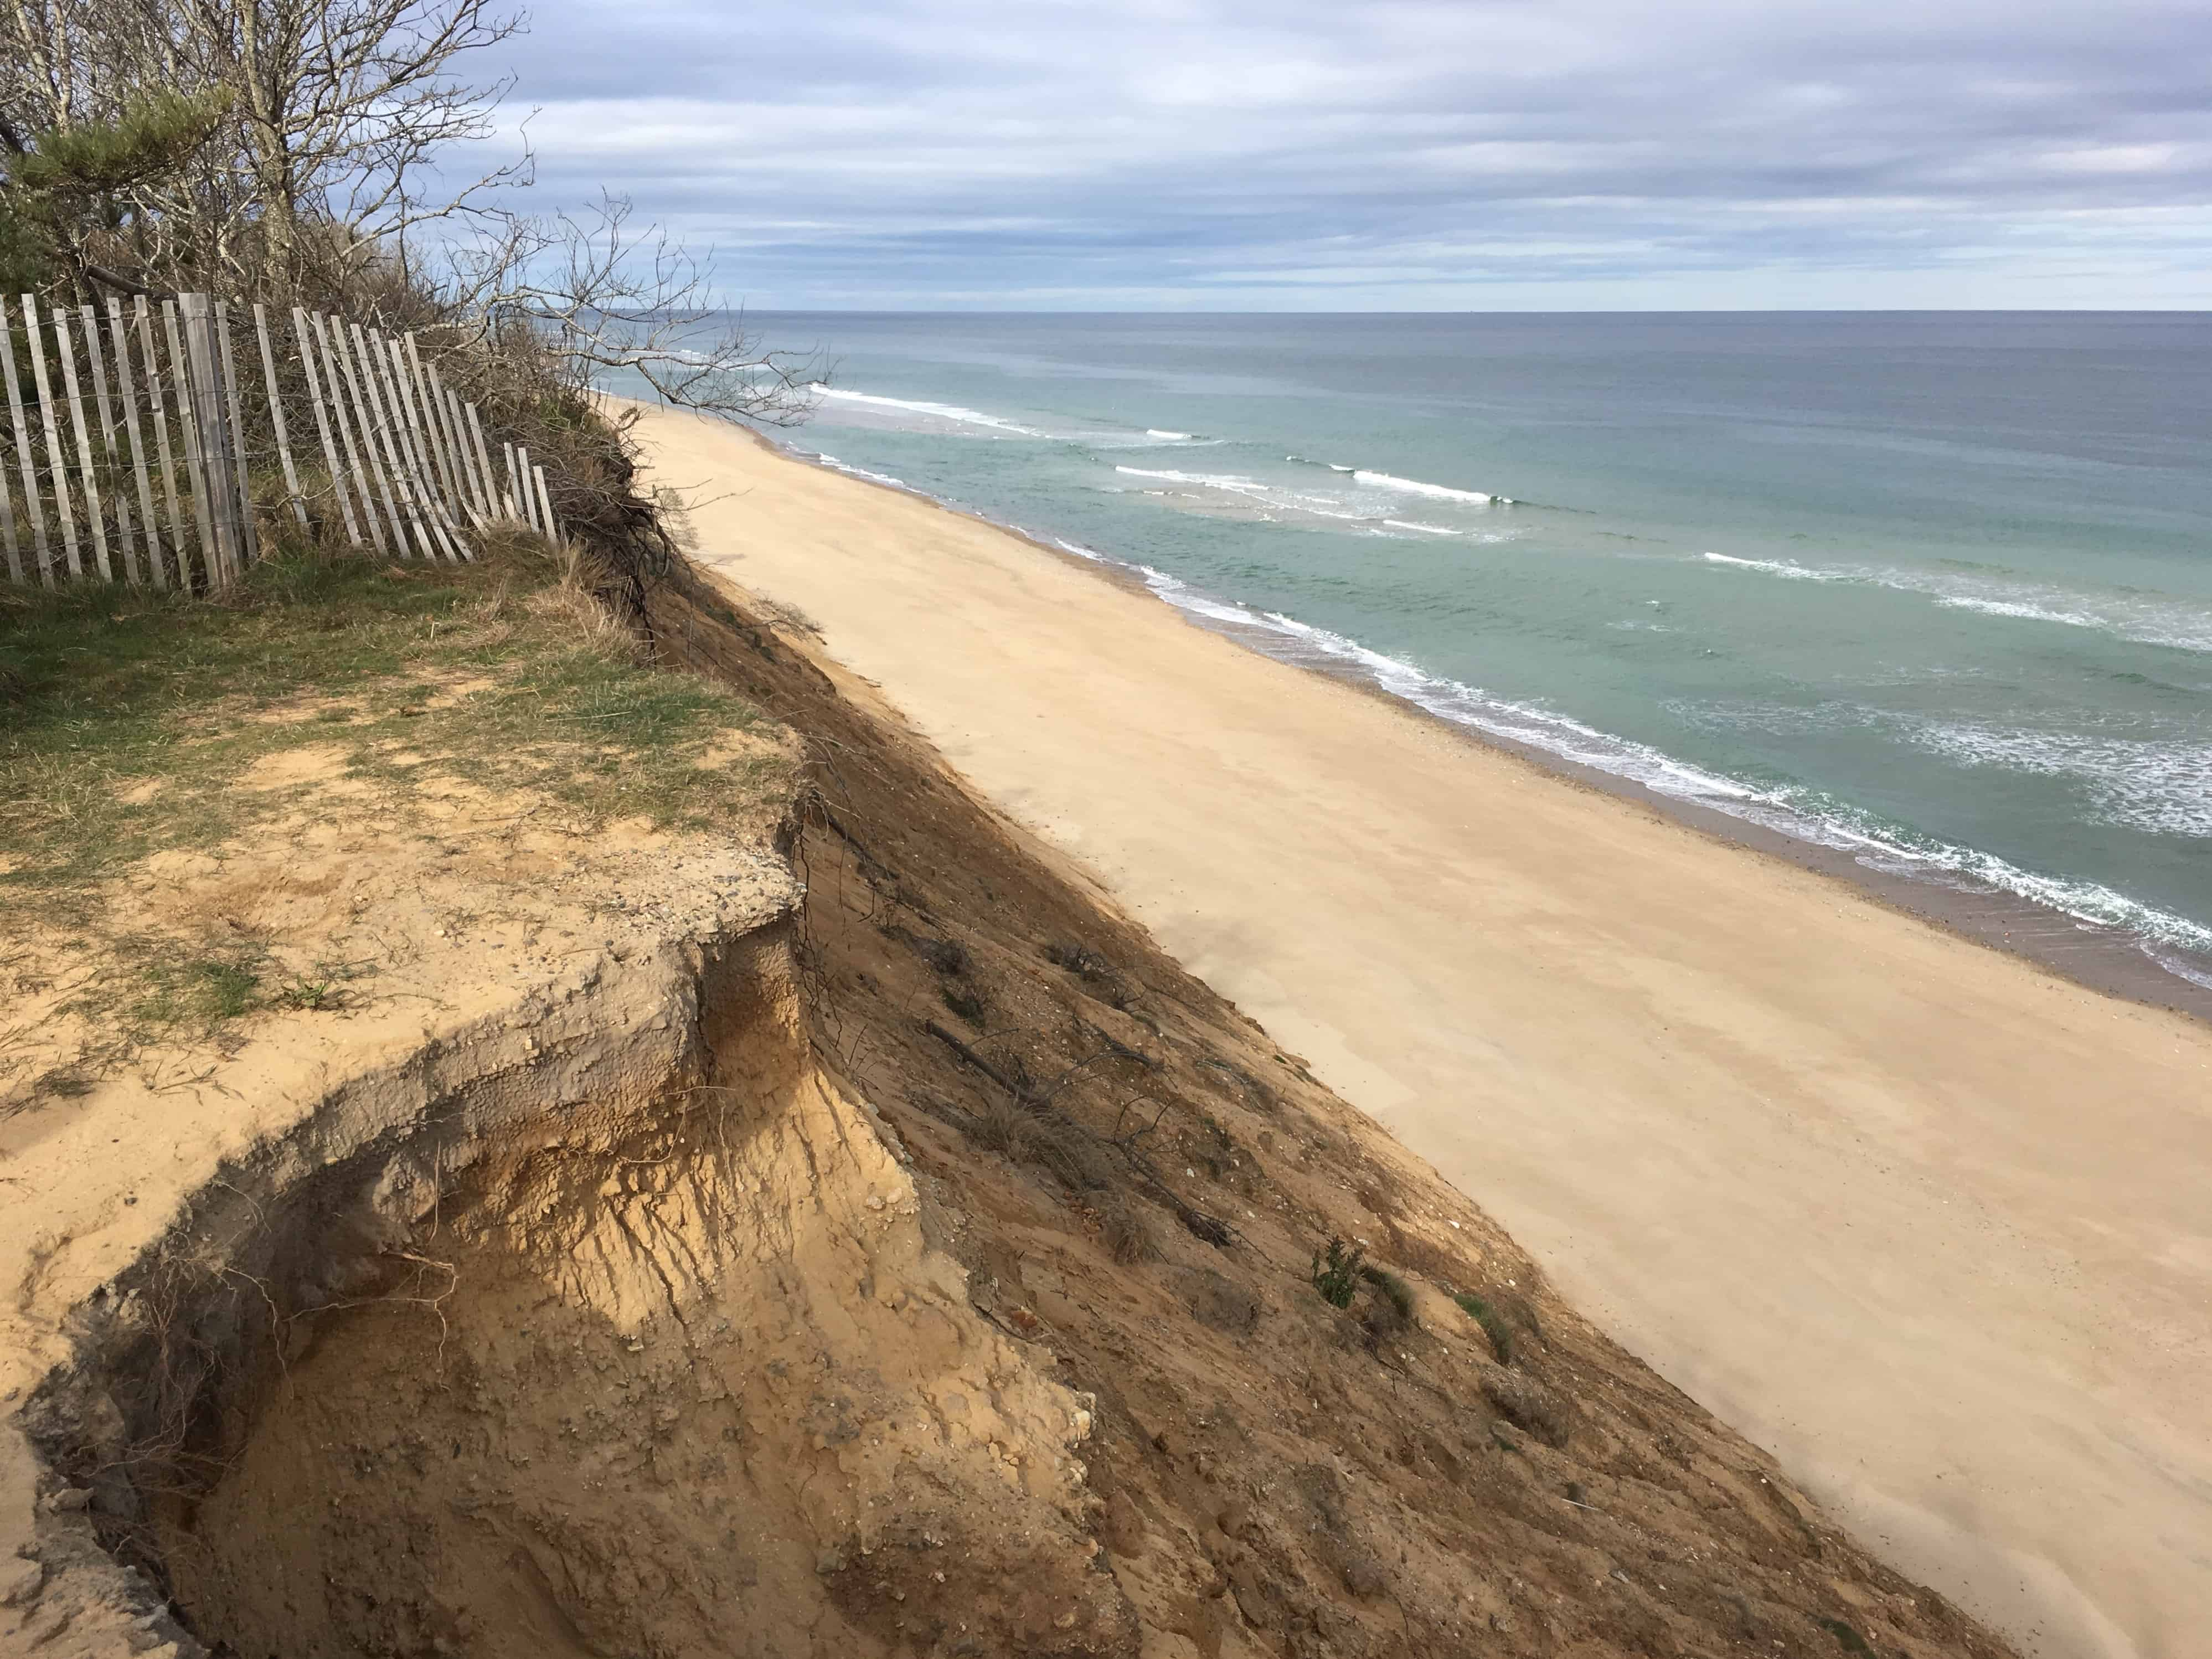 Cape cod attractions top 3 reasons to visit cape cod - What is a cape cod ...